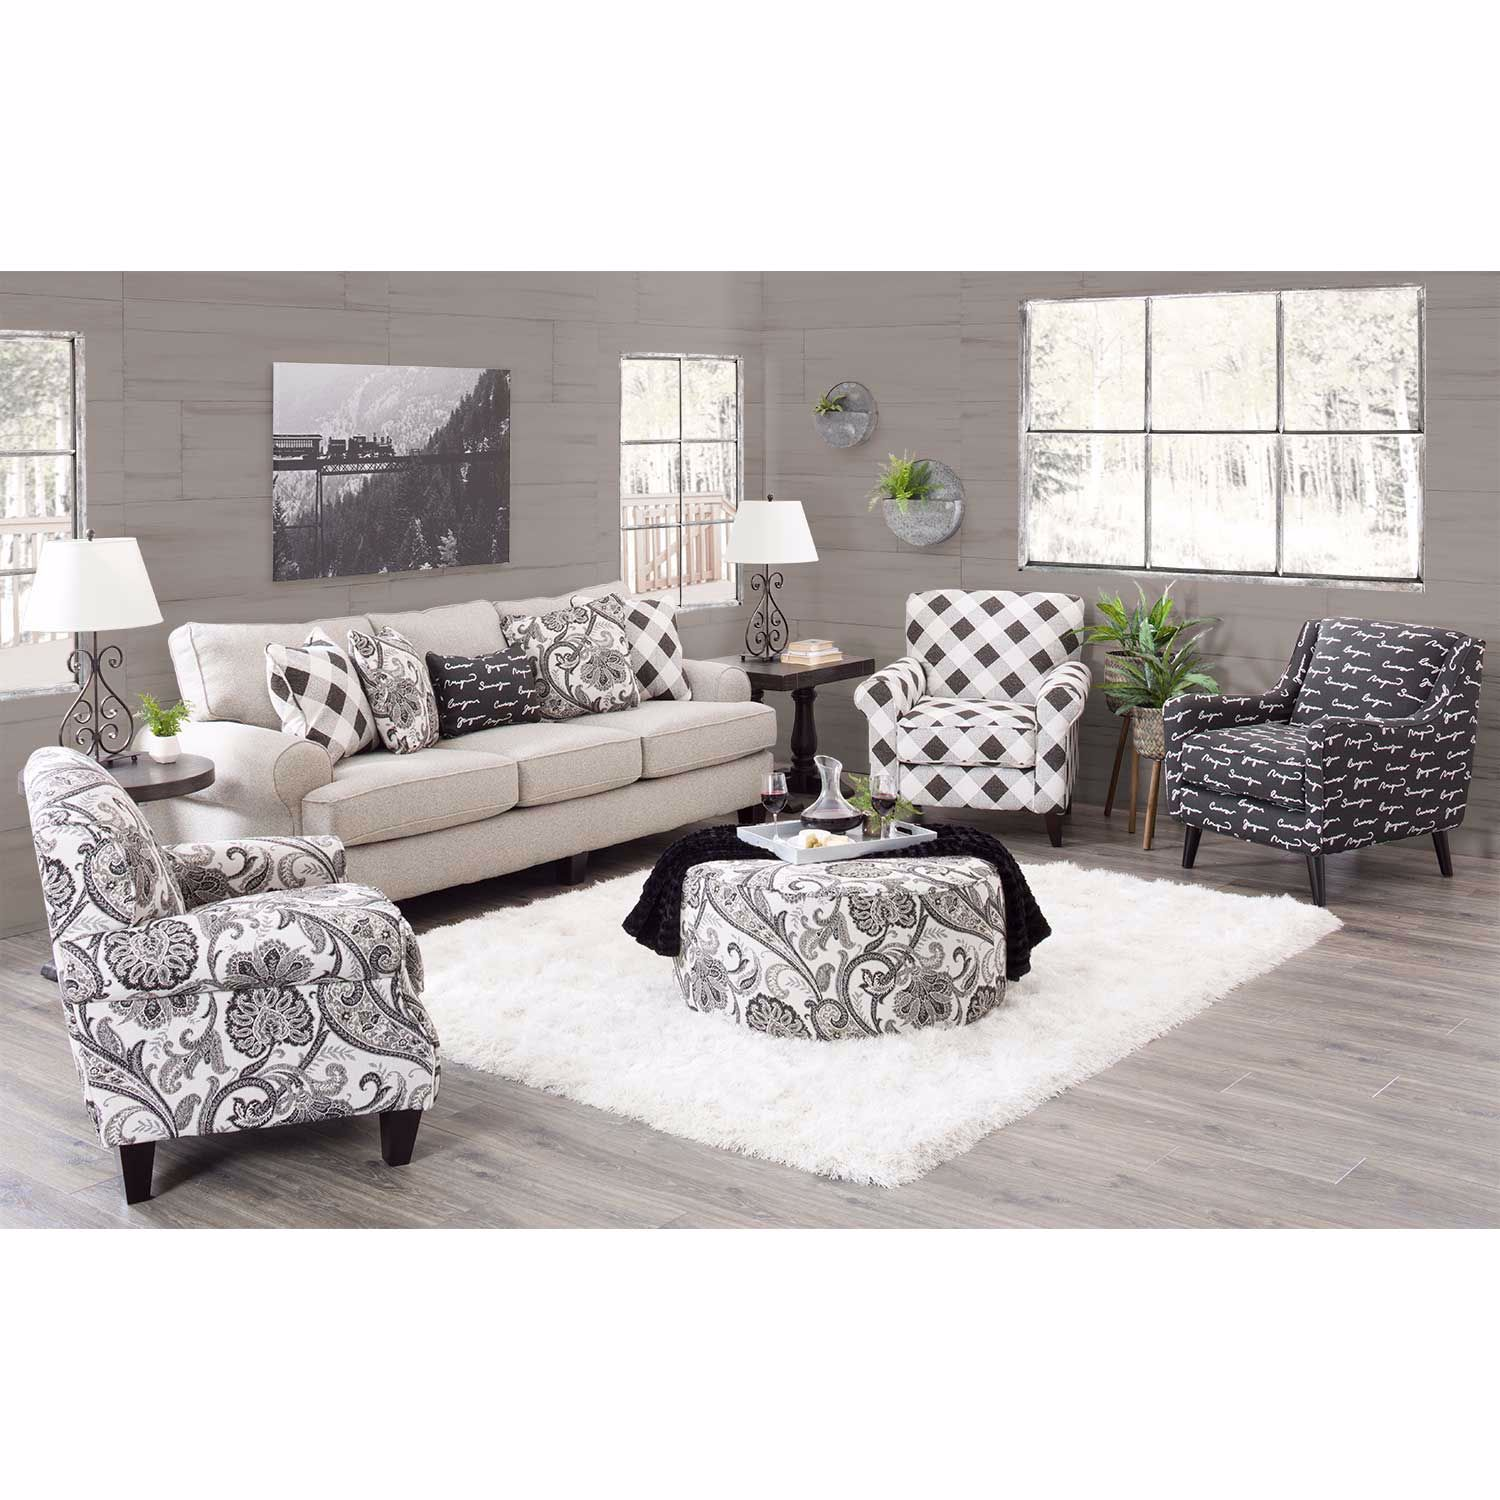 Picture of Abby Road Script Accent Chair